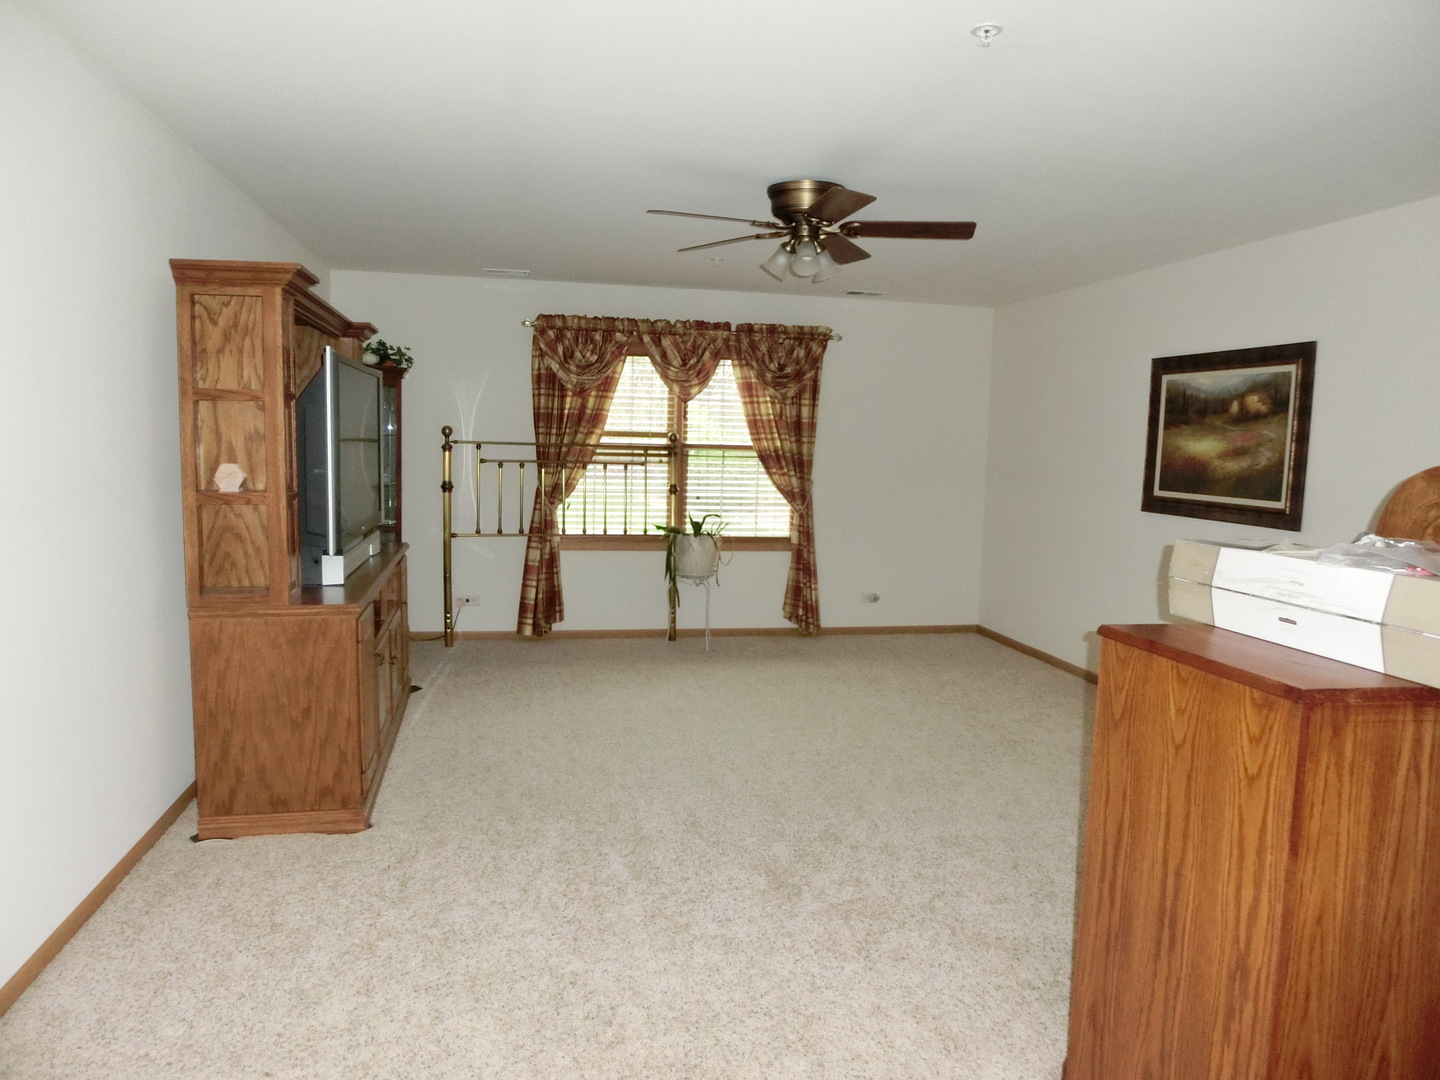 20301 South Pine Hill 2A, FRANKFORT, Illinois, 60423